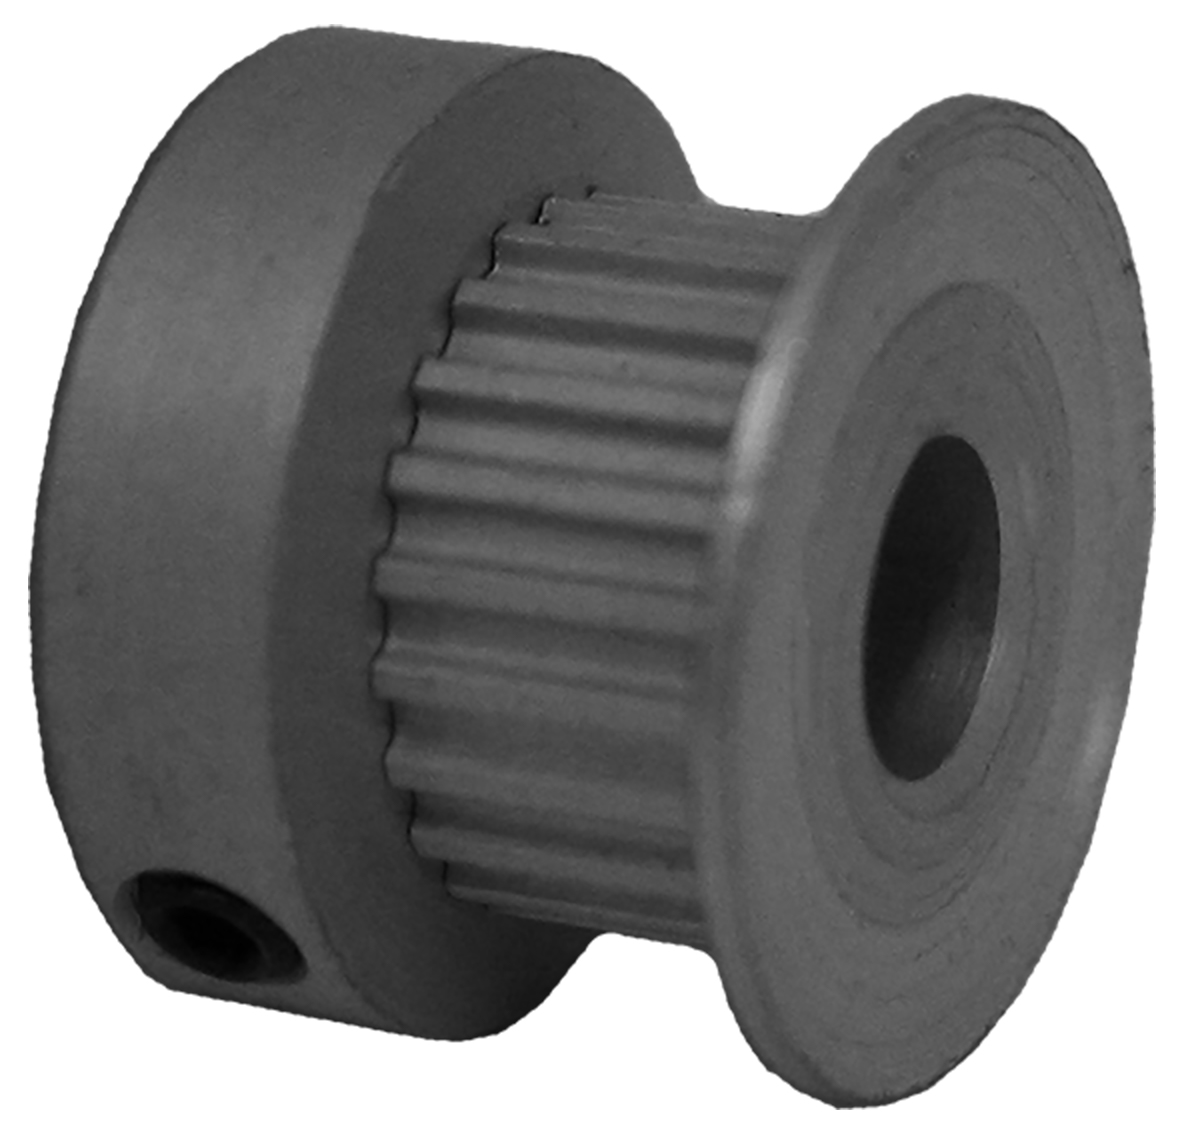 22MP025-6CA3 - Aluminum Imperial Pitch Pulleys